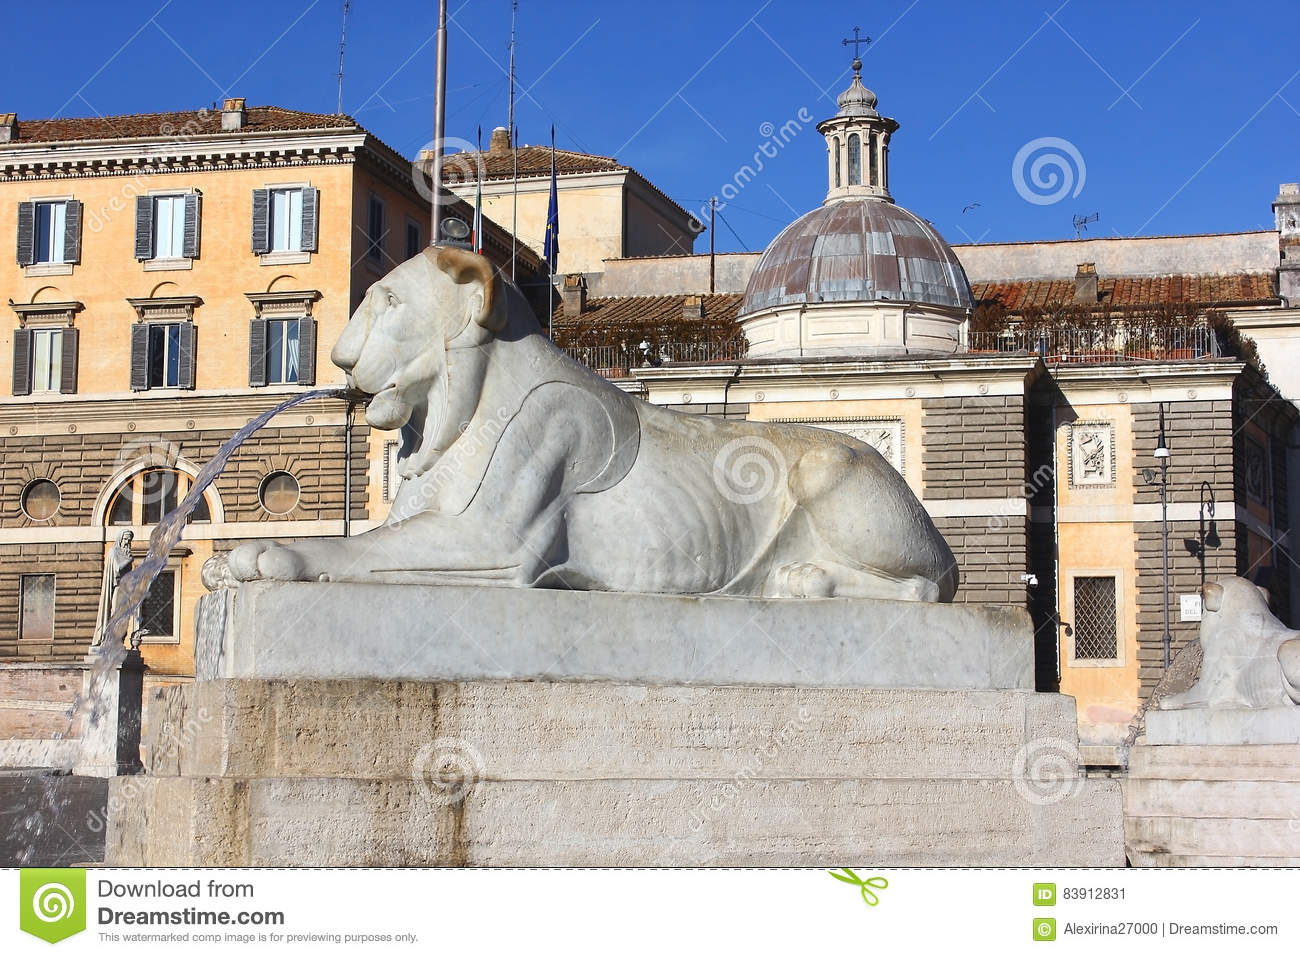 Fountain in the form of a lying lion, Piazza del Popolo, Rome